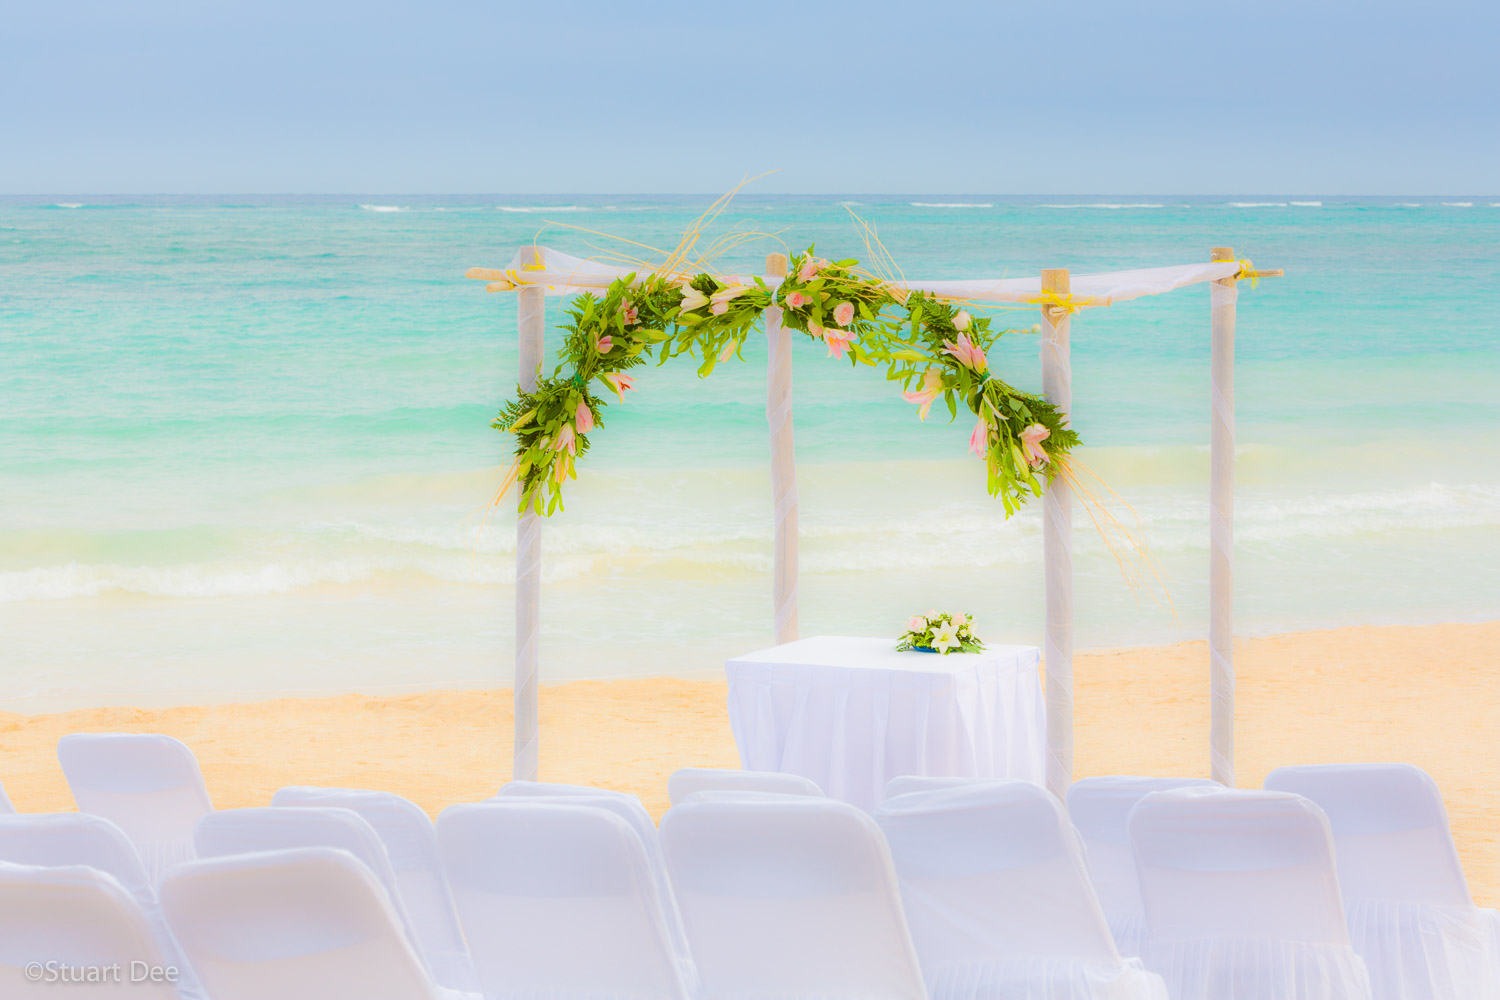 Wedding setting by the beach